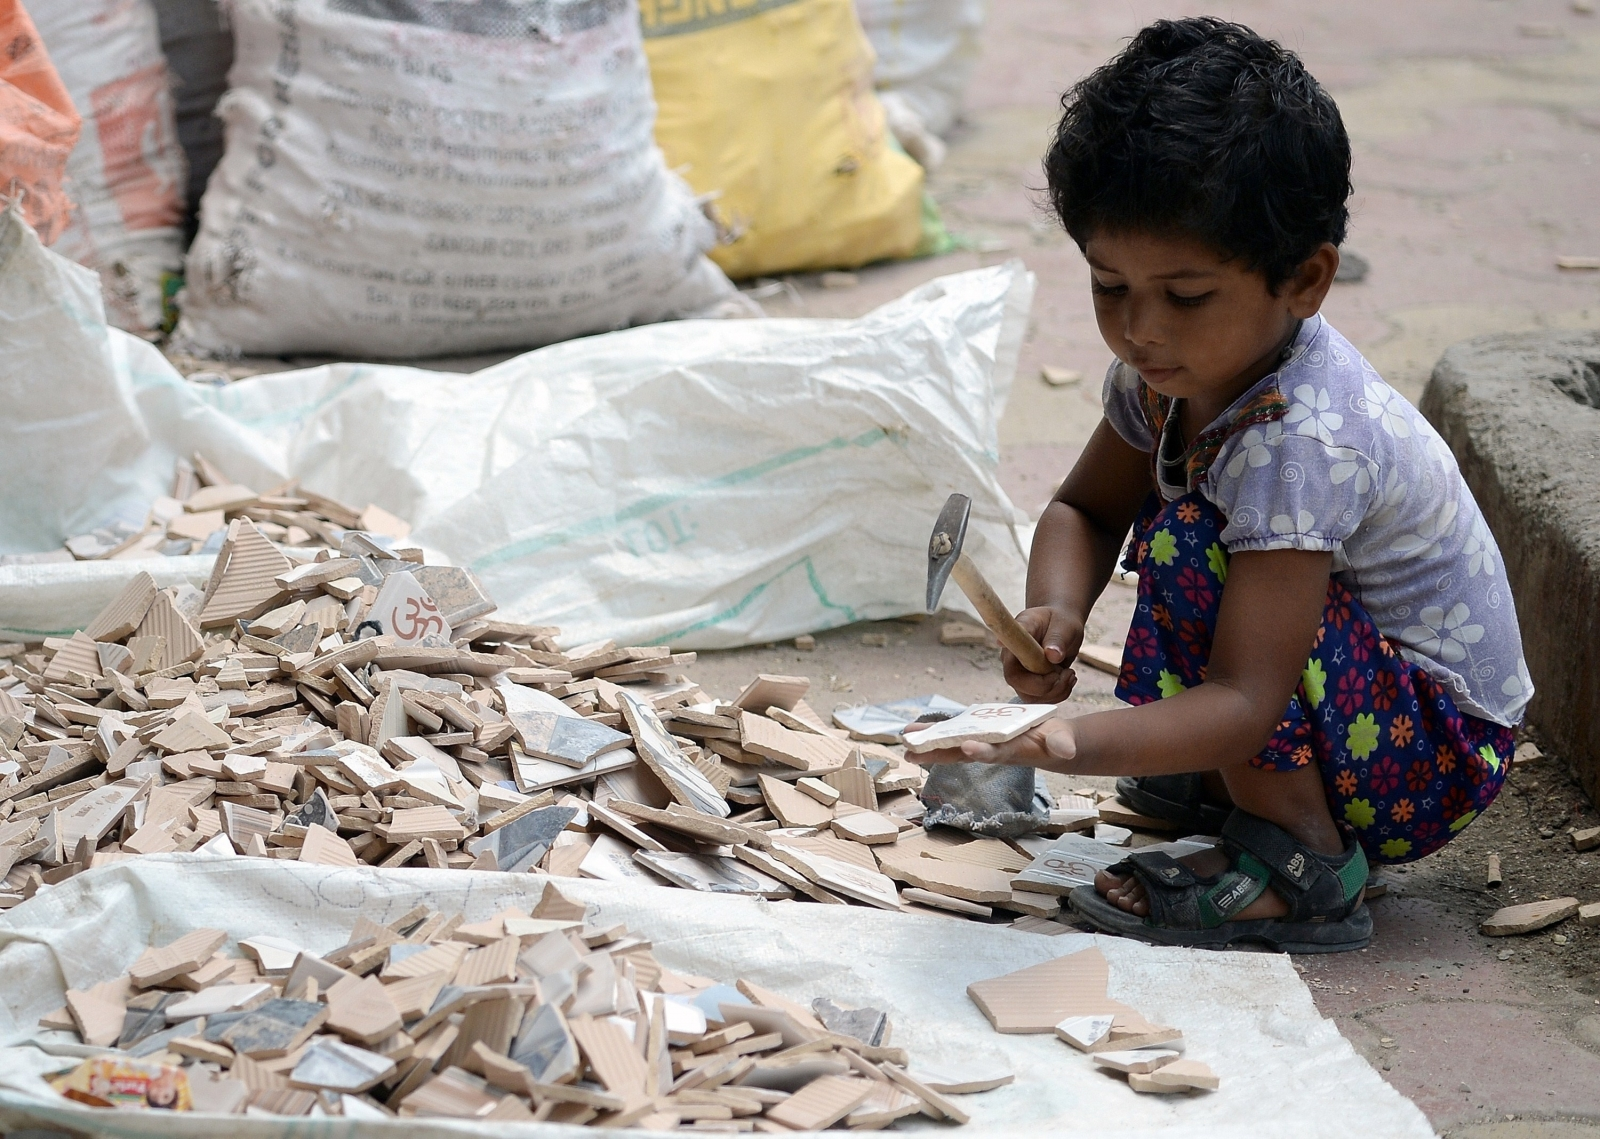 Child labour India